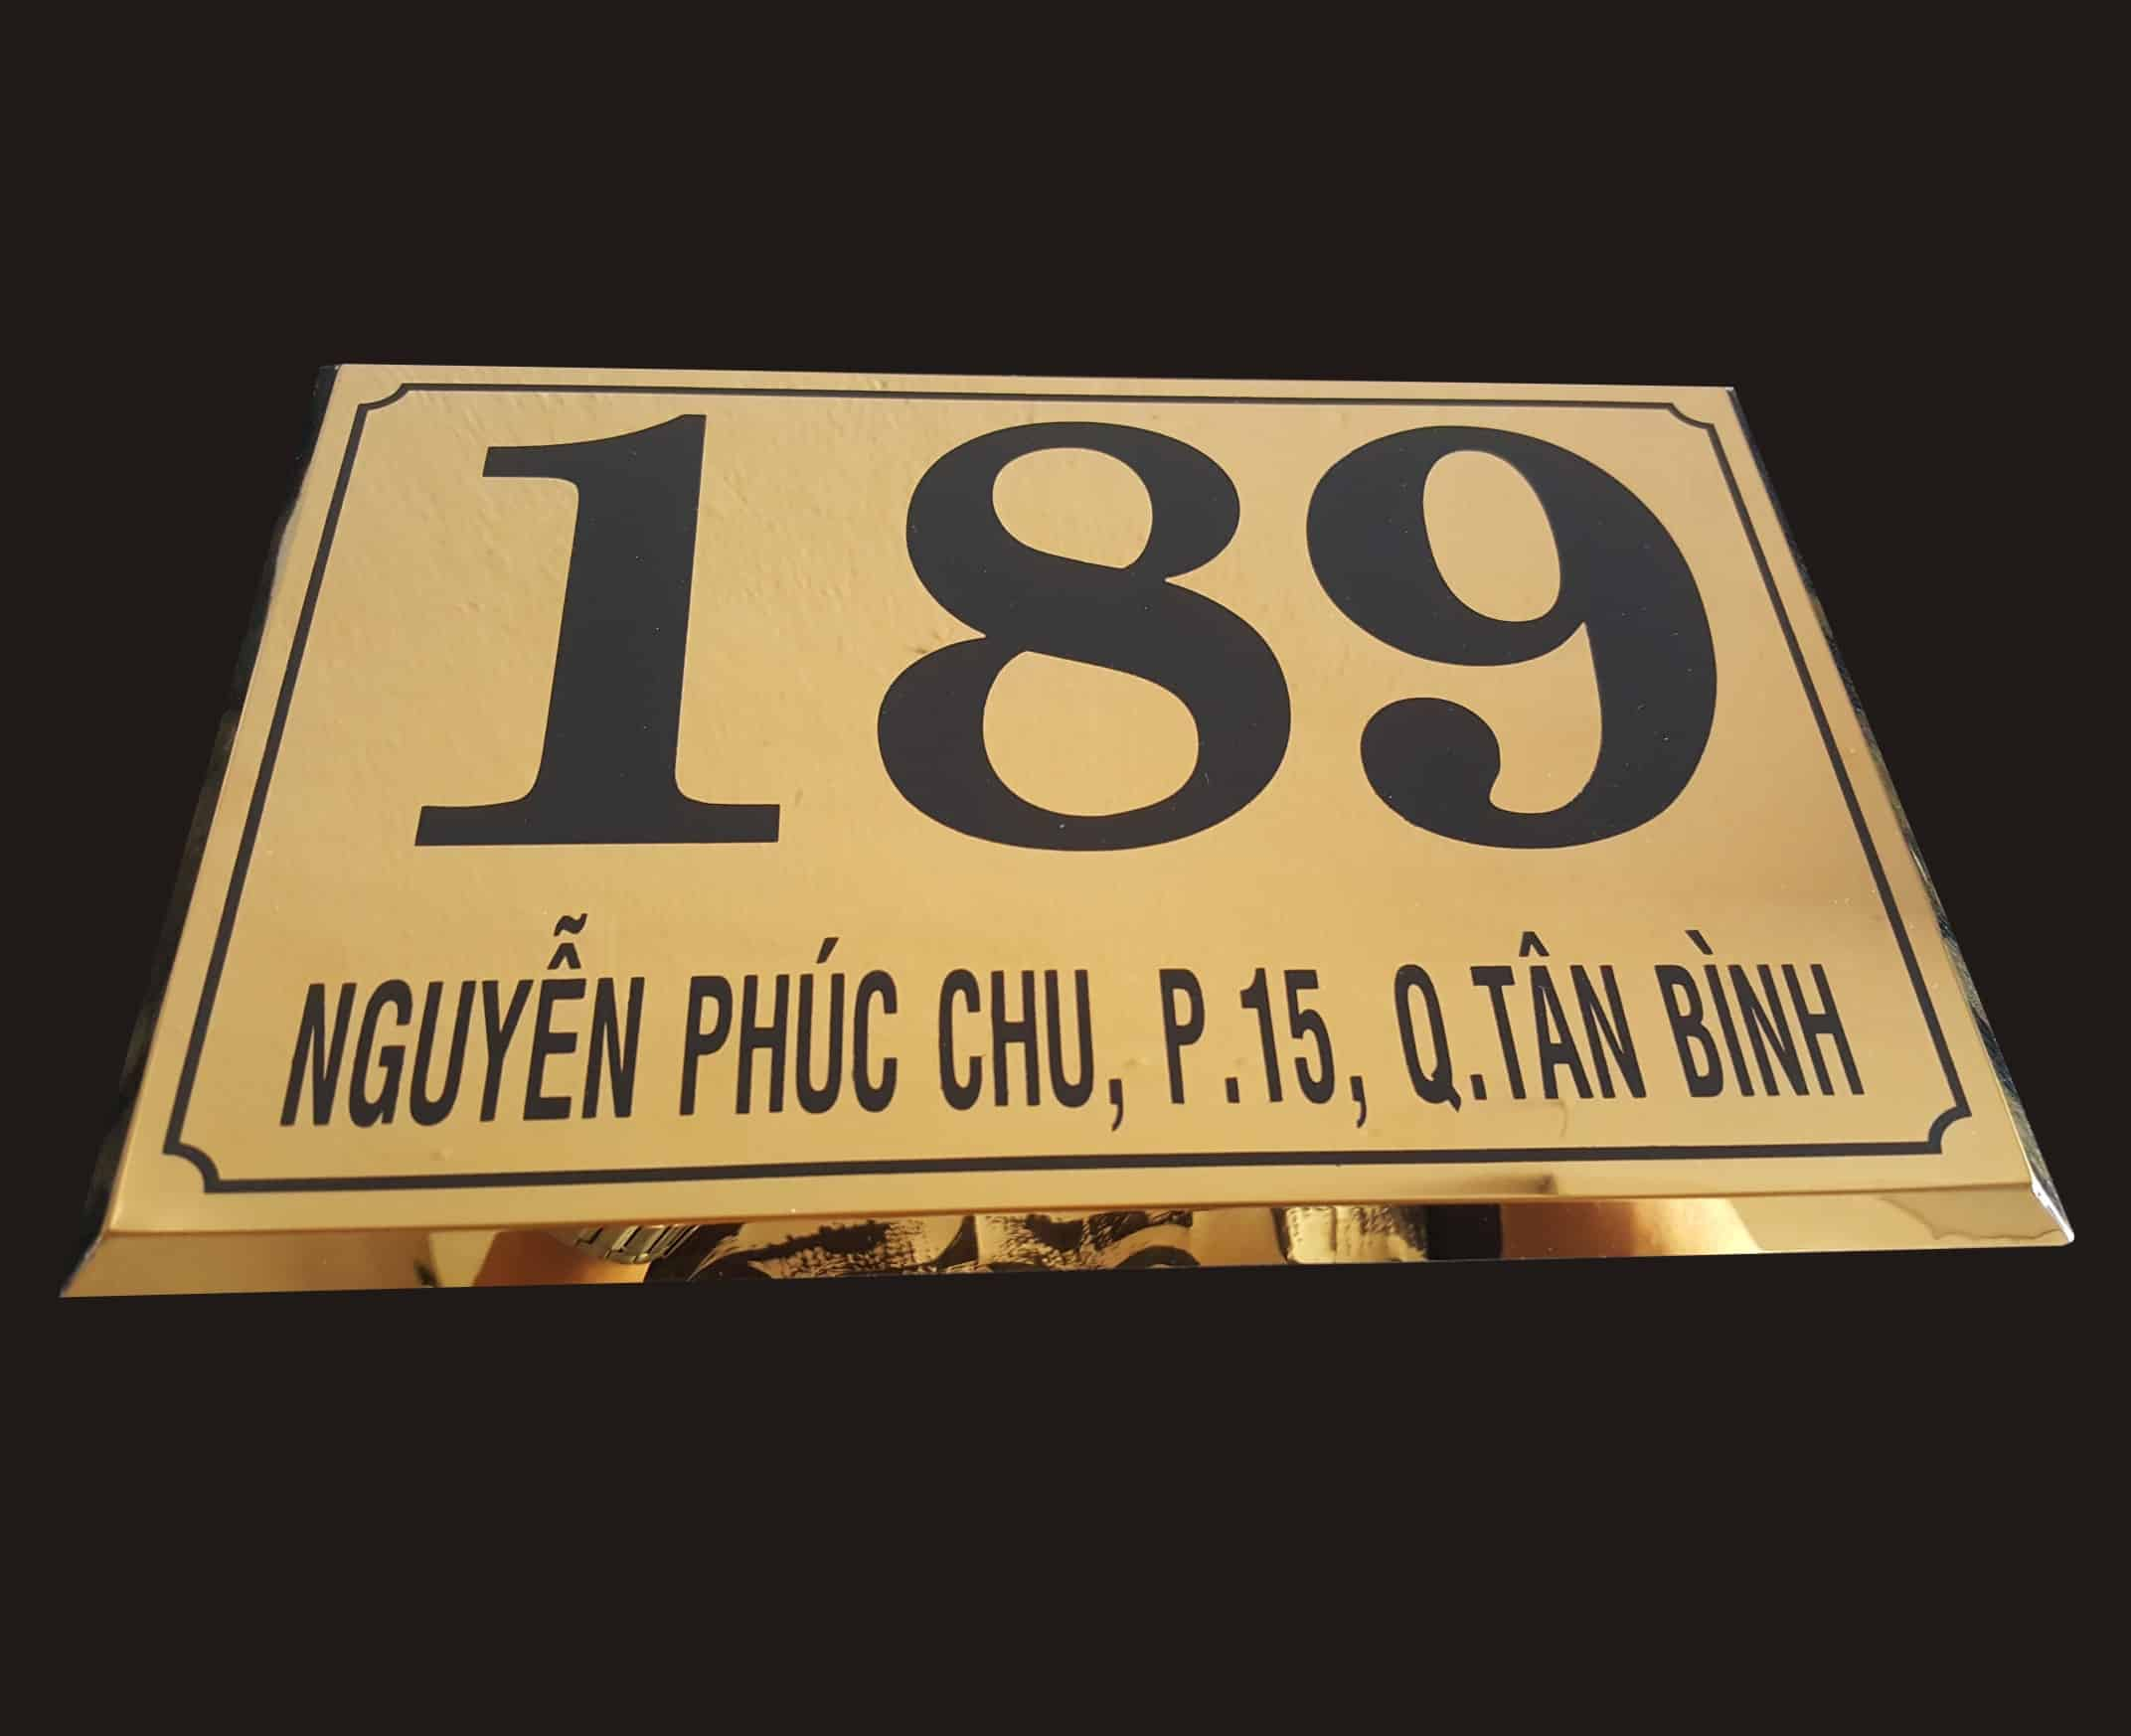 Rules of How to Read Addresses in Vietnam - Vietnam address format